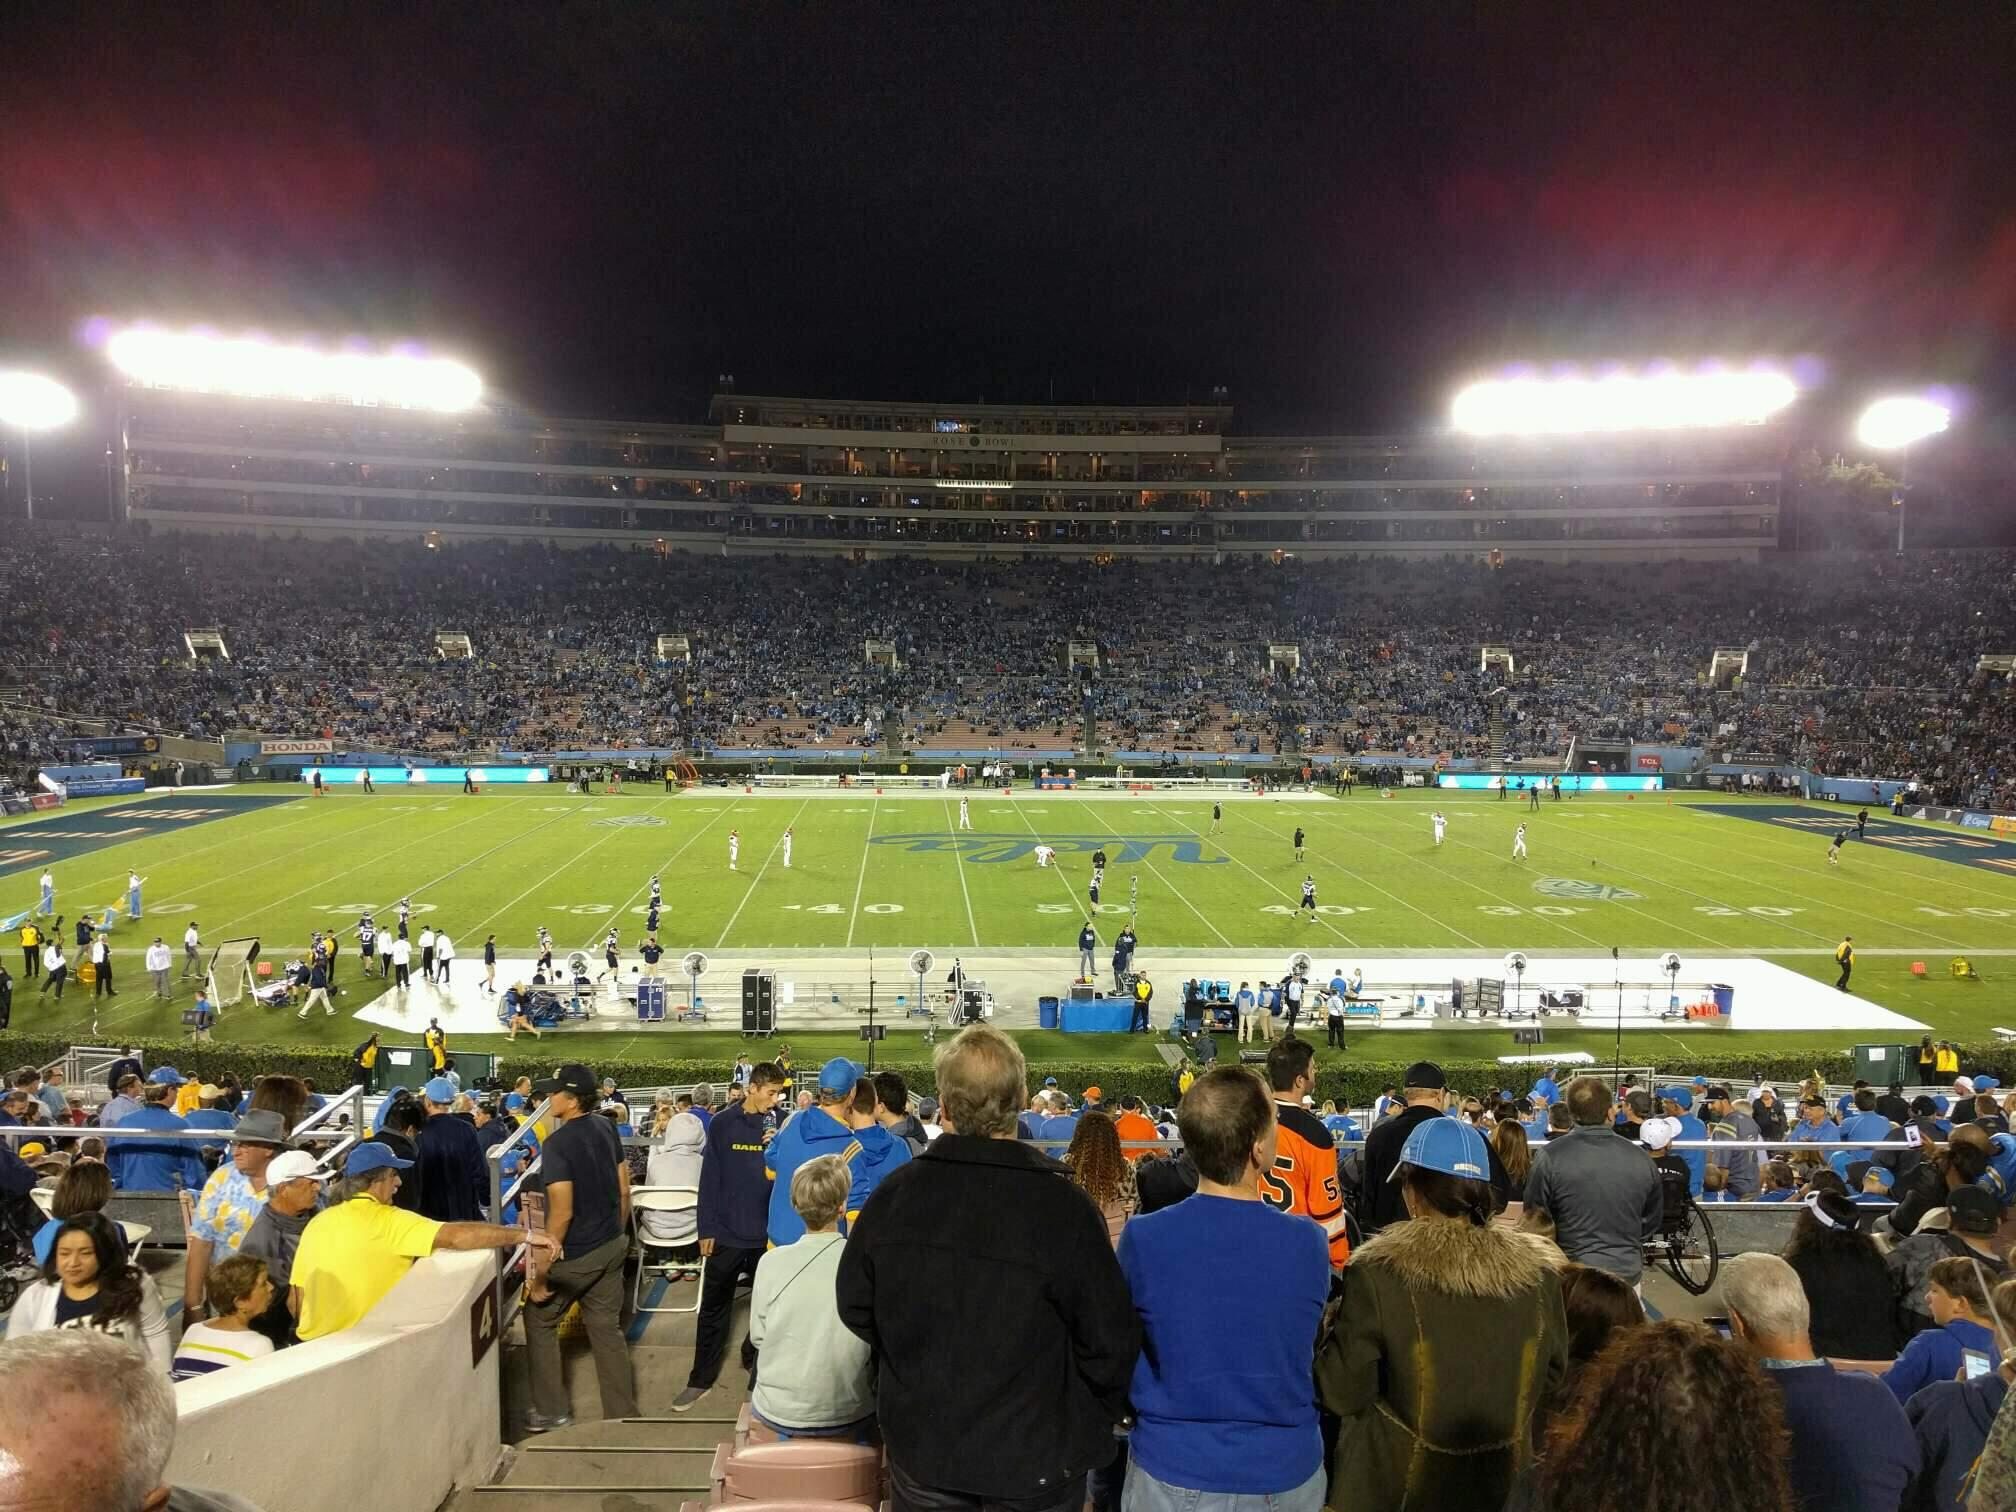 Rose Bowl Section 4-H Row 40 Seat 103